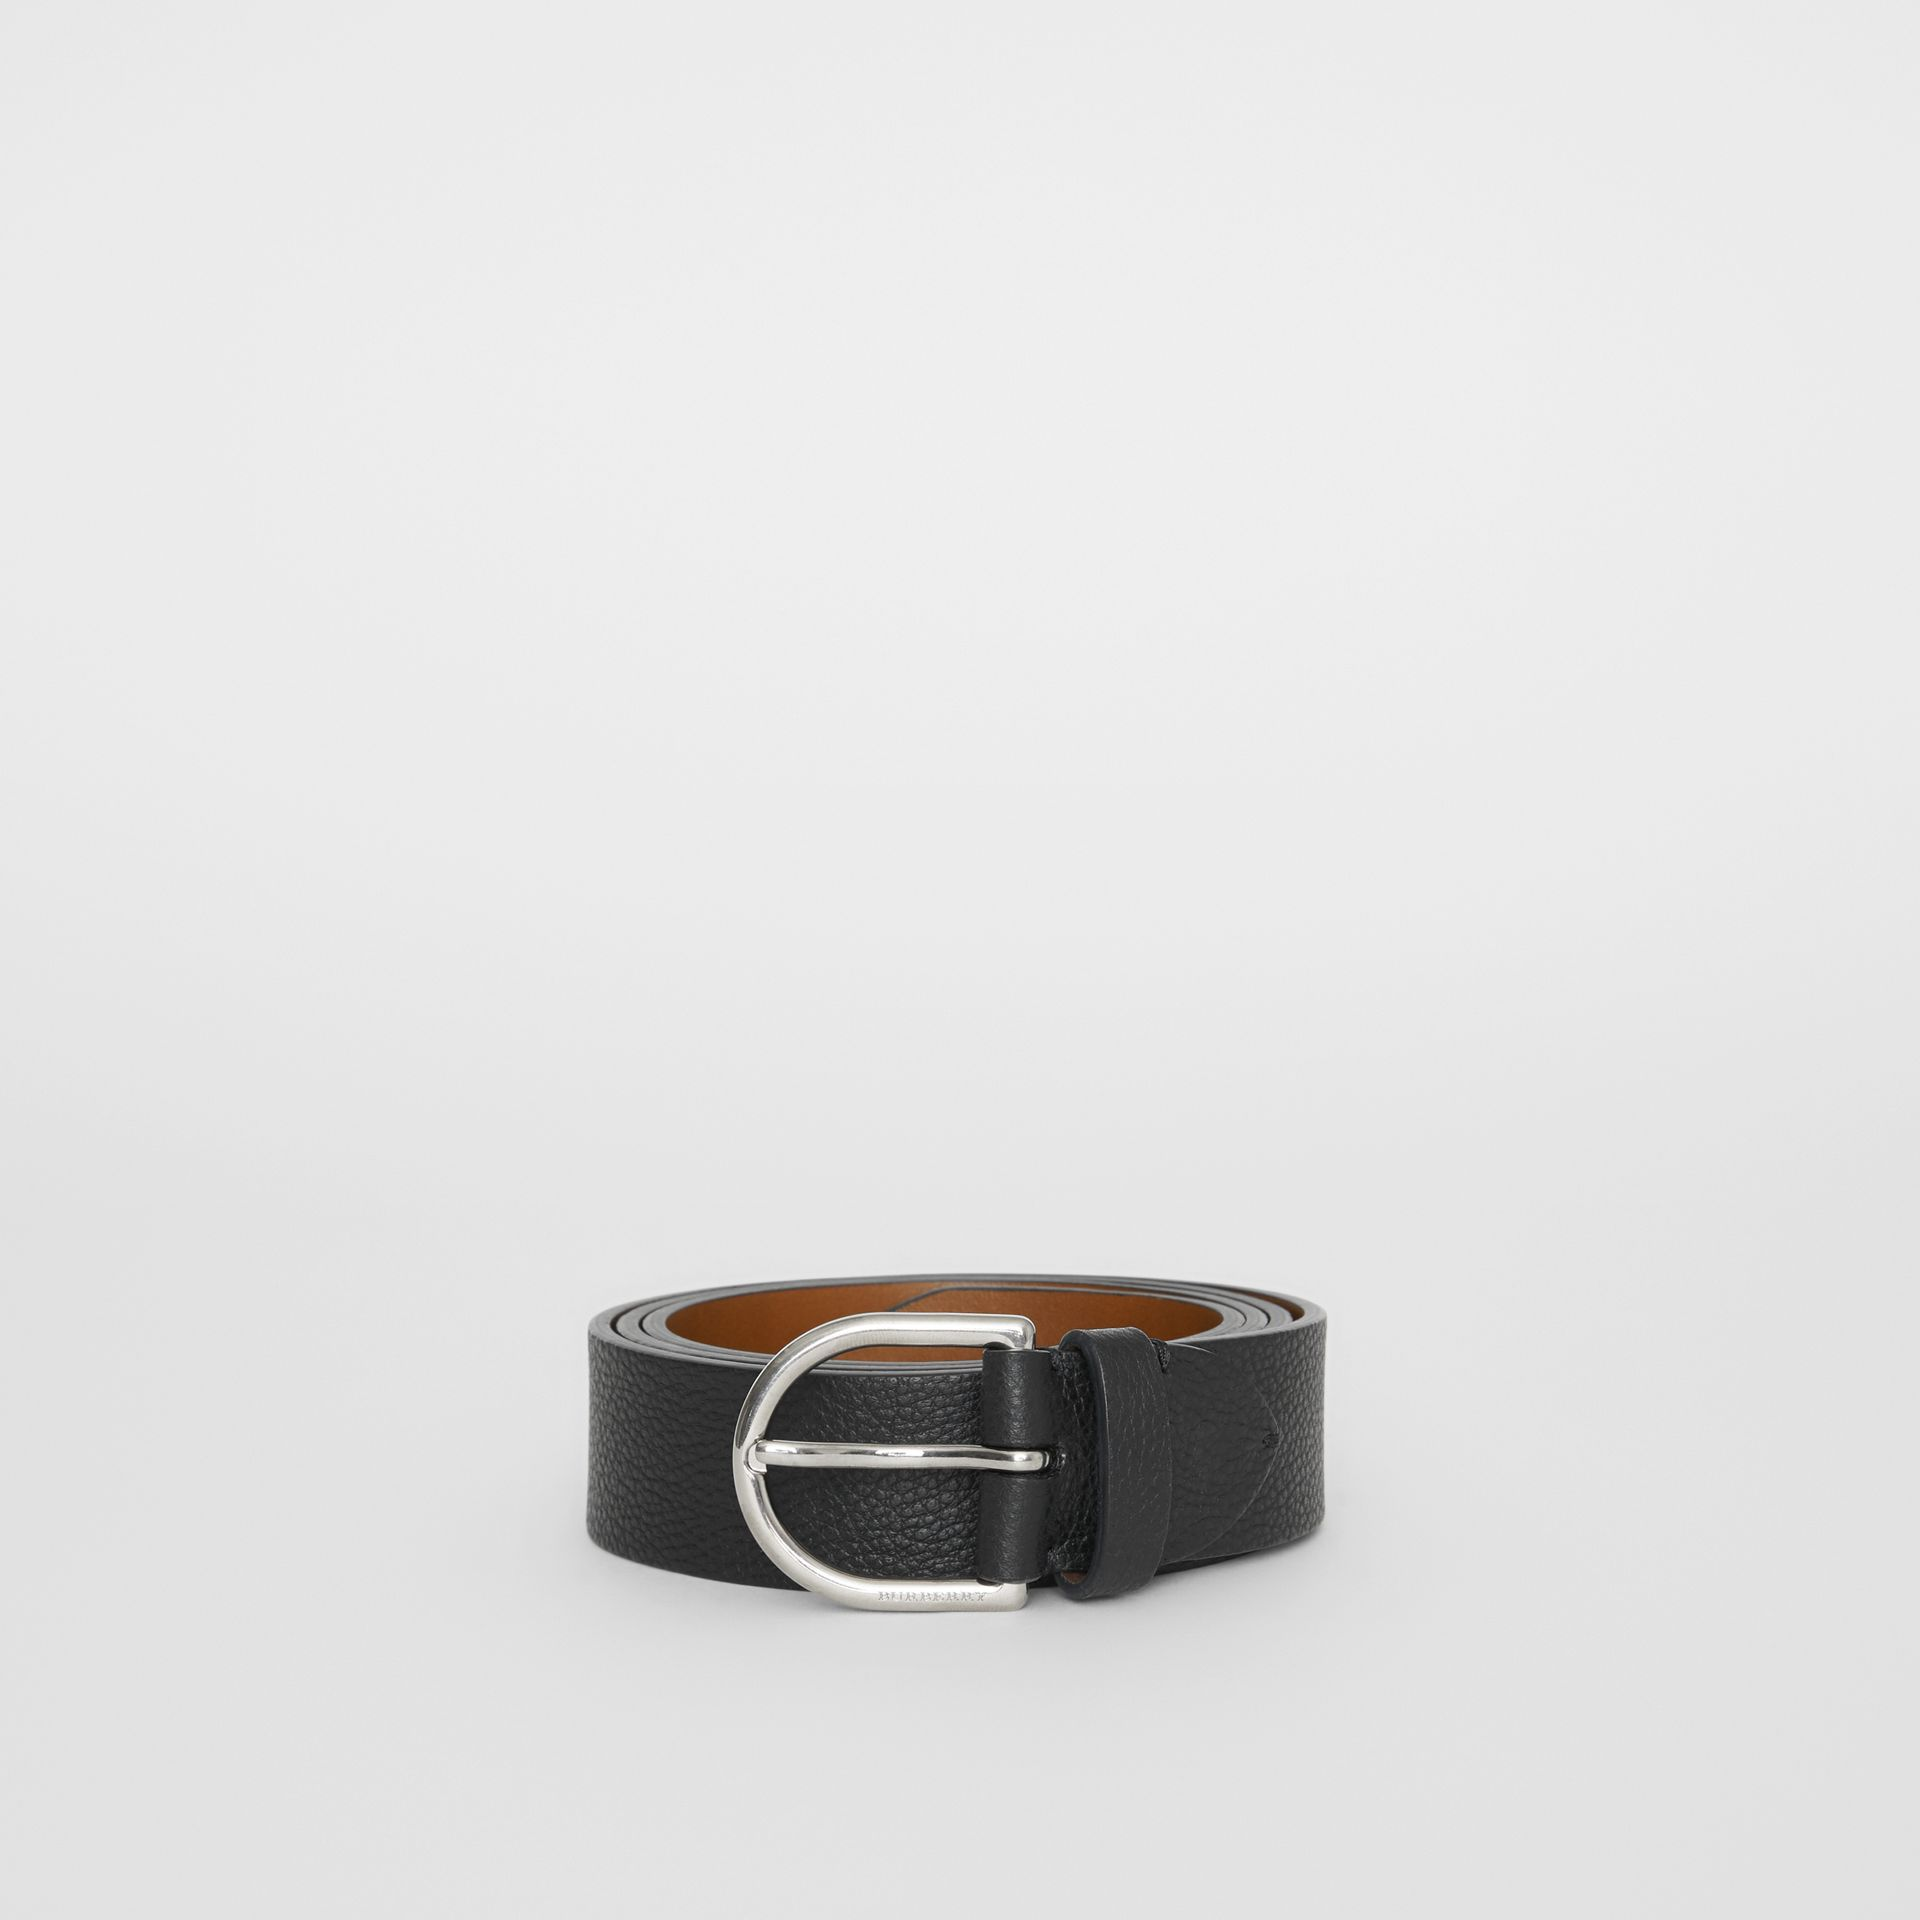 D-shaped Buckle Grainy Leather Belt in Black - Men | Burberry - gallery image 3